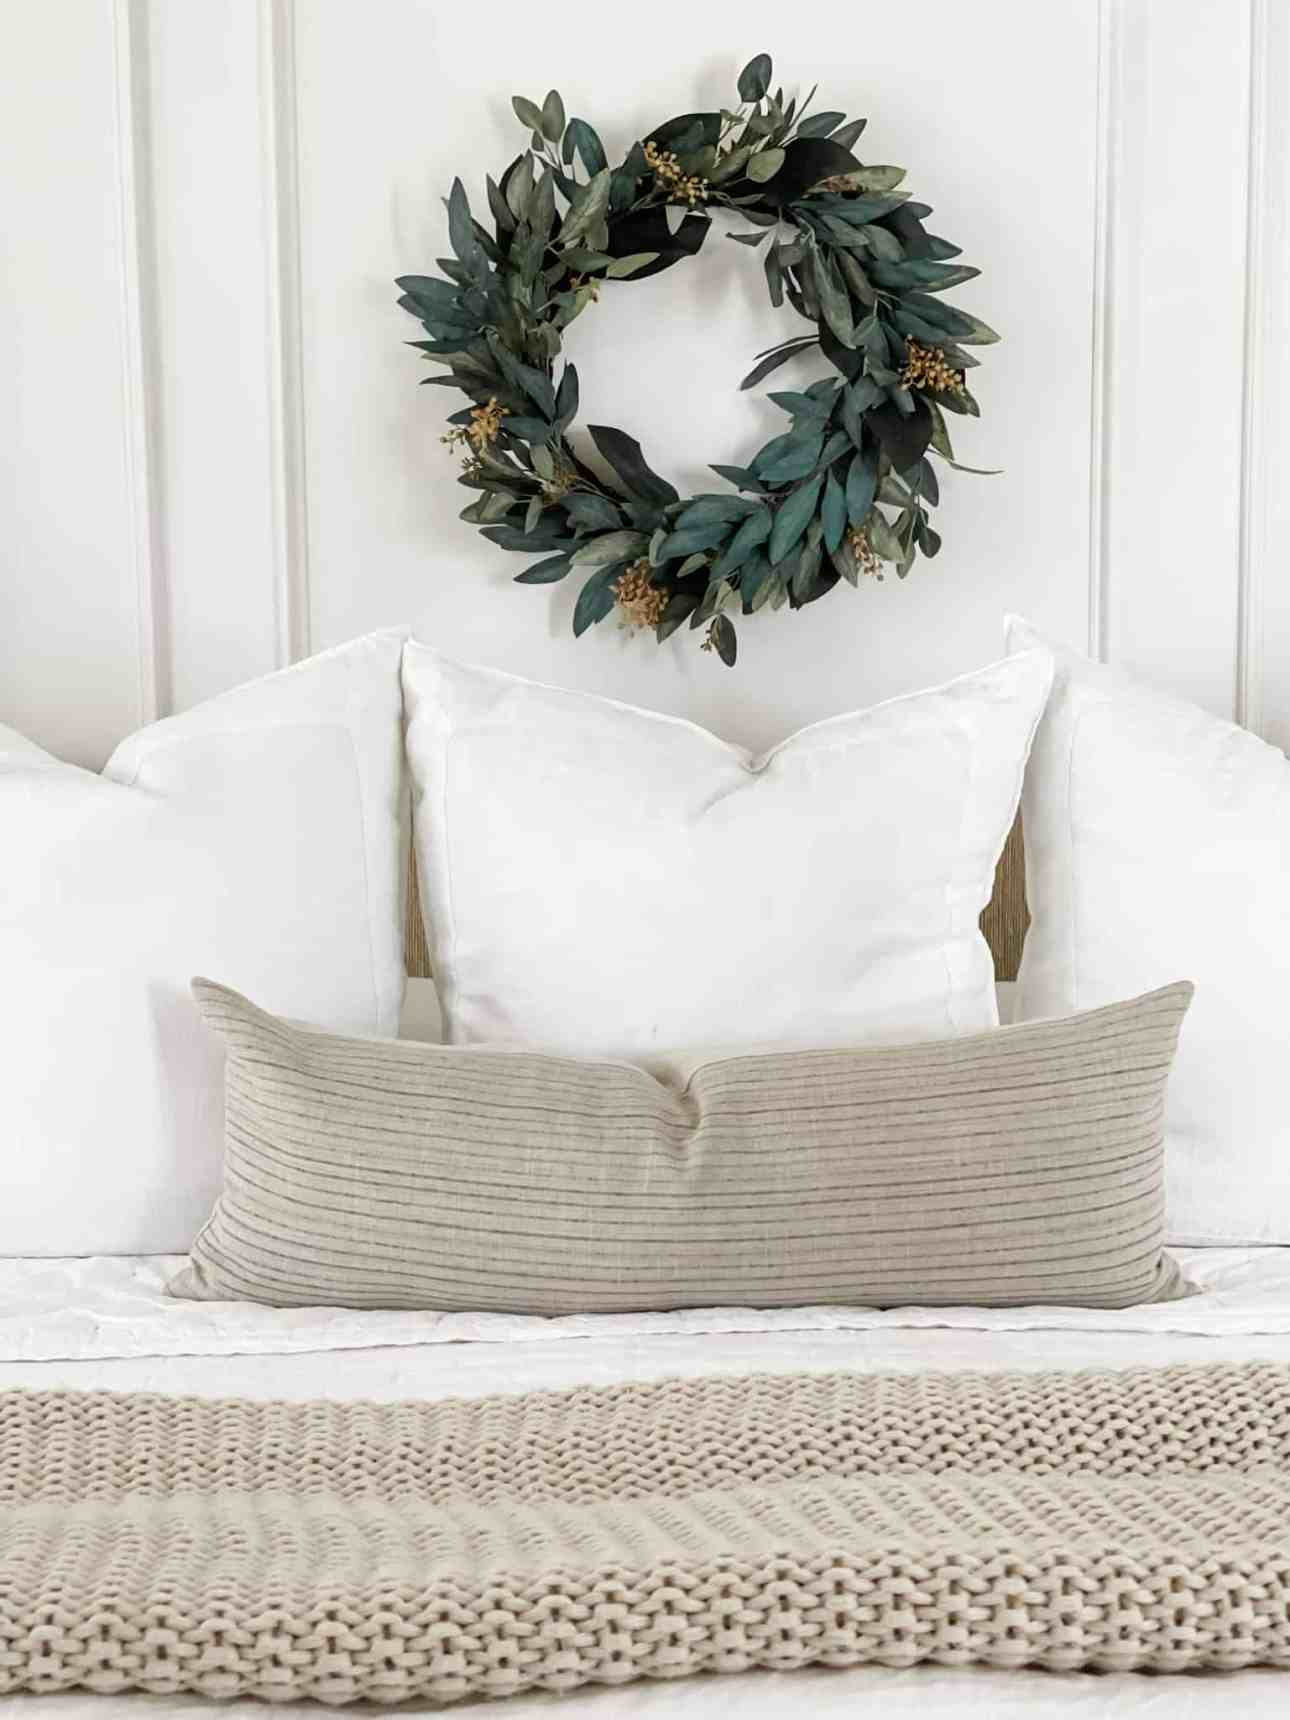 White linen euro shams and bedding from Serena & Lily.